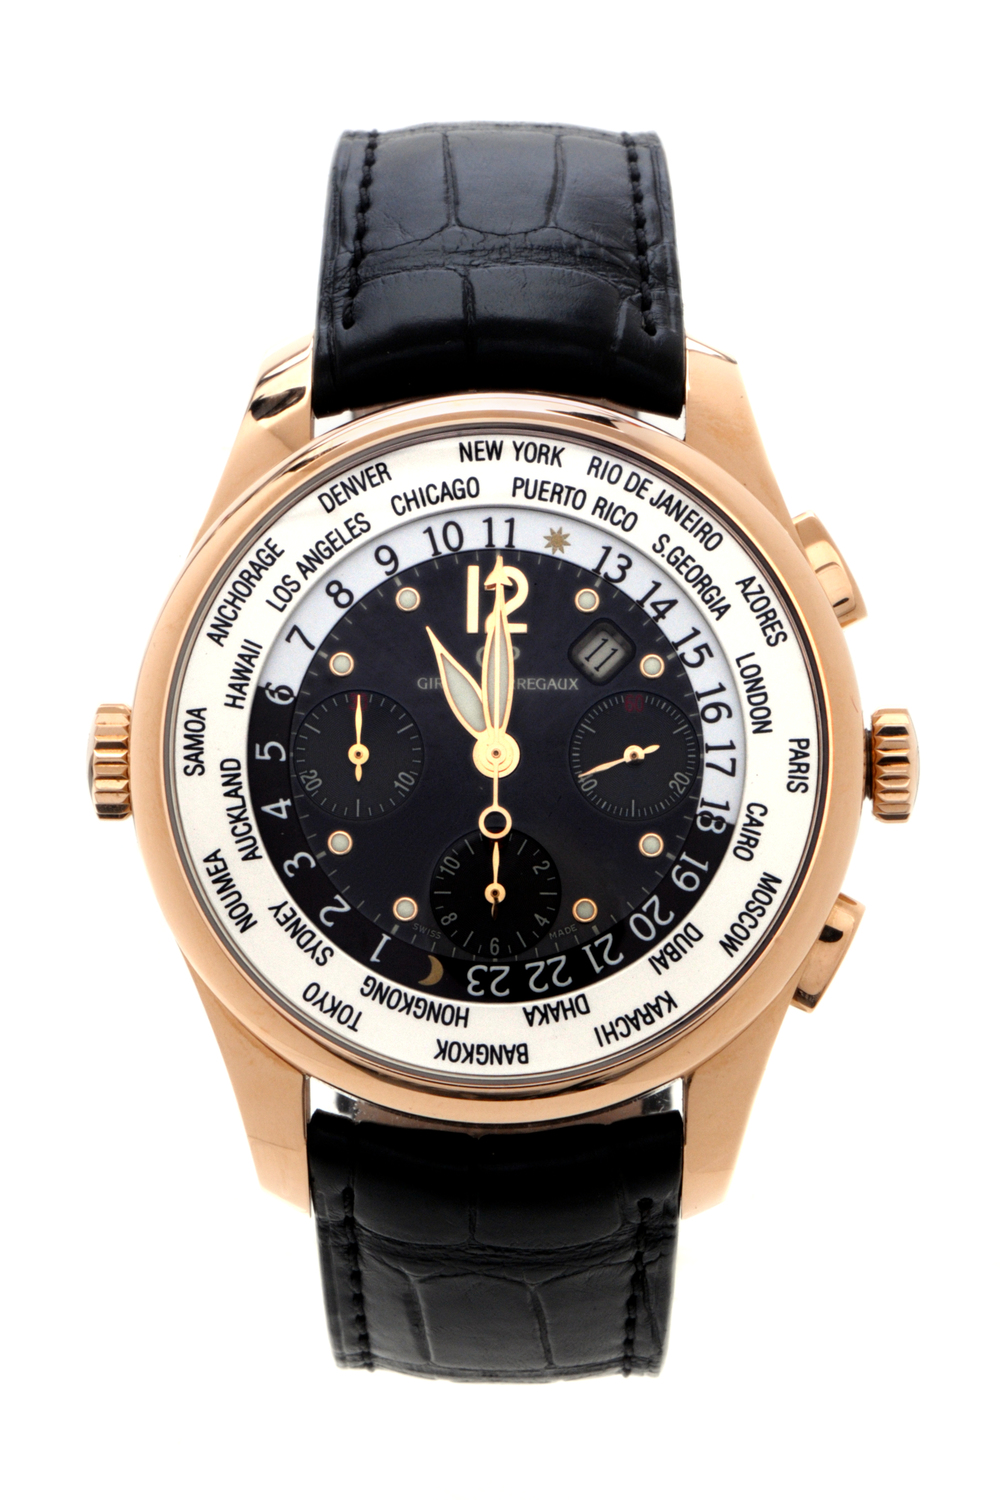 Connoisseur Collection: Girard-Perregaux World Wide Time Control Chronograph